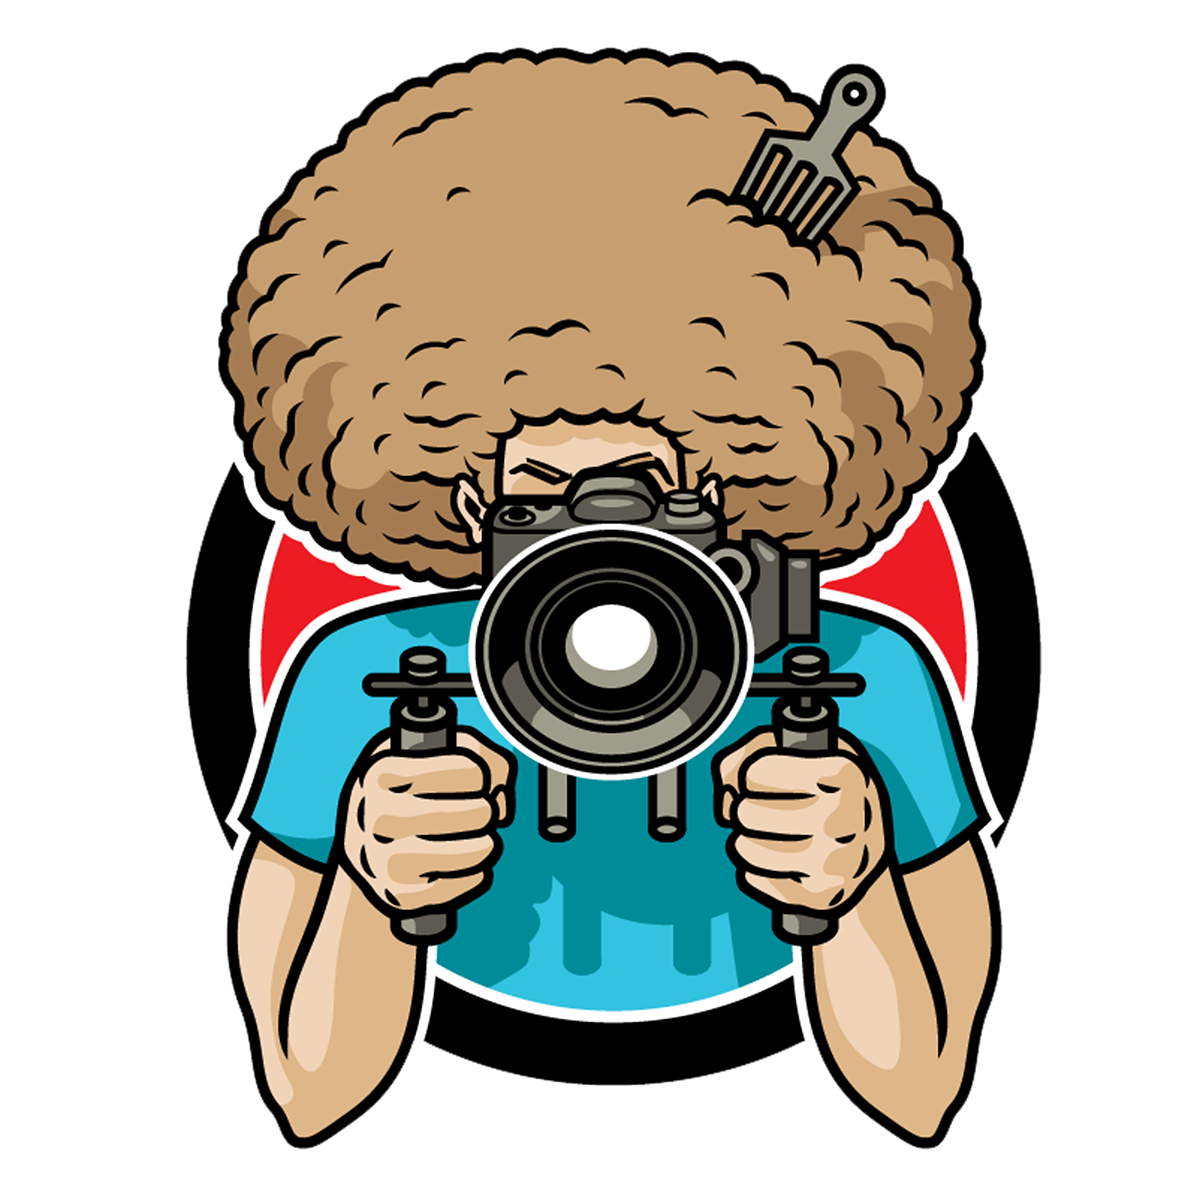 Sun sticking tongue clipart clipart free library FroKnowsPhoto guide to DSLR video now available: Digital Photography ... clipart free library